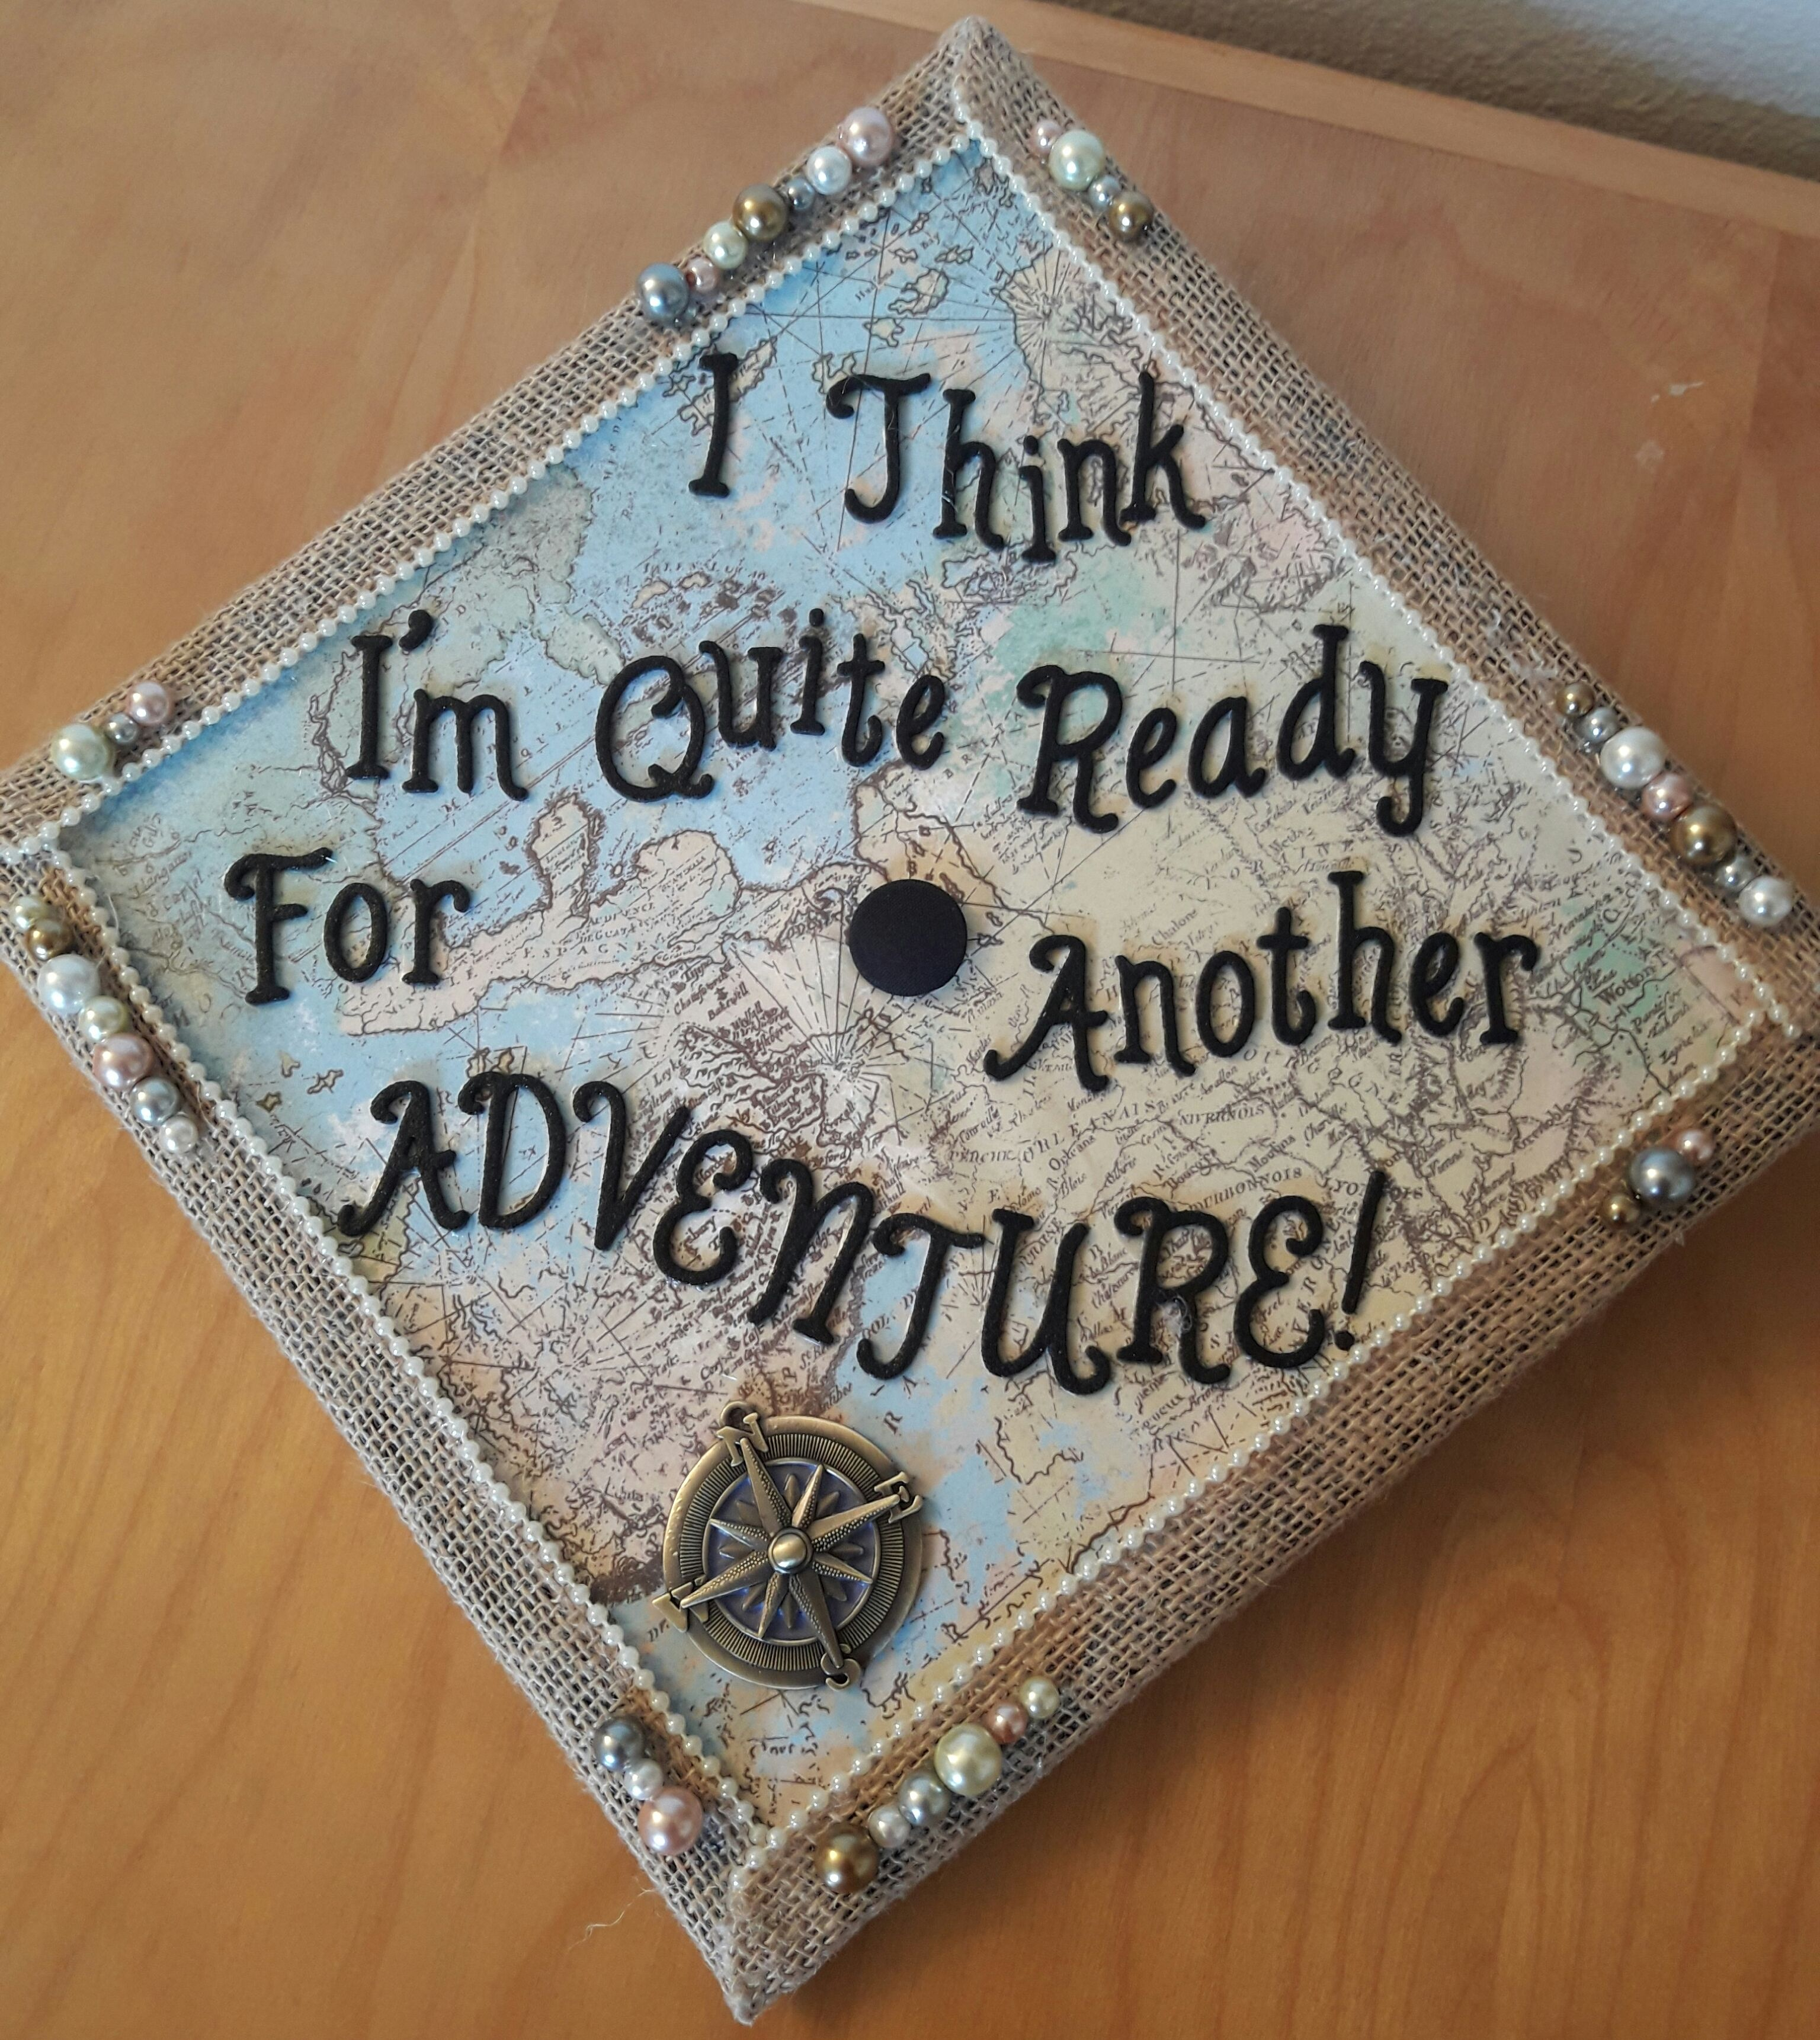 """I can't believe my college career is over already! It's been the best four years of my life (so far). """"I think I'm quite ready for another adventure!""""#graduation2017 #graduationcaps #lotr #LordOfTheRings #BilboBaggins #TolkienI purchased all of my supplies at Hobby Lobby! (Map scrapbook paper, letters, burlap with pearl trim, compass rose charm, colored pearls)"""